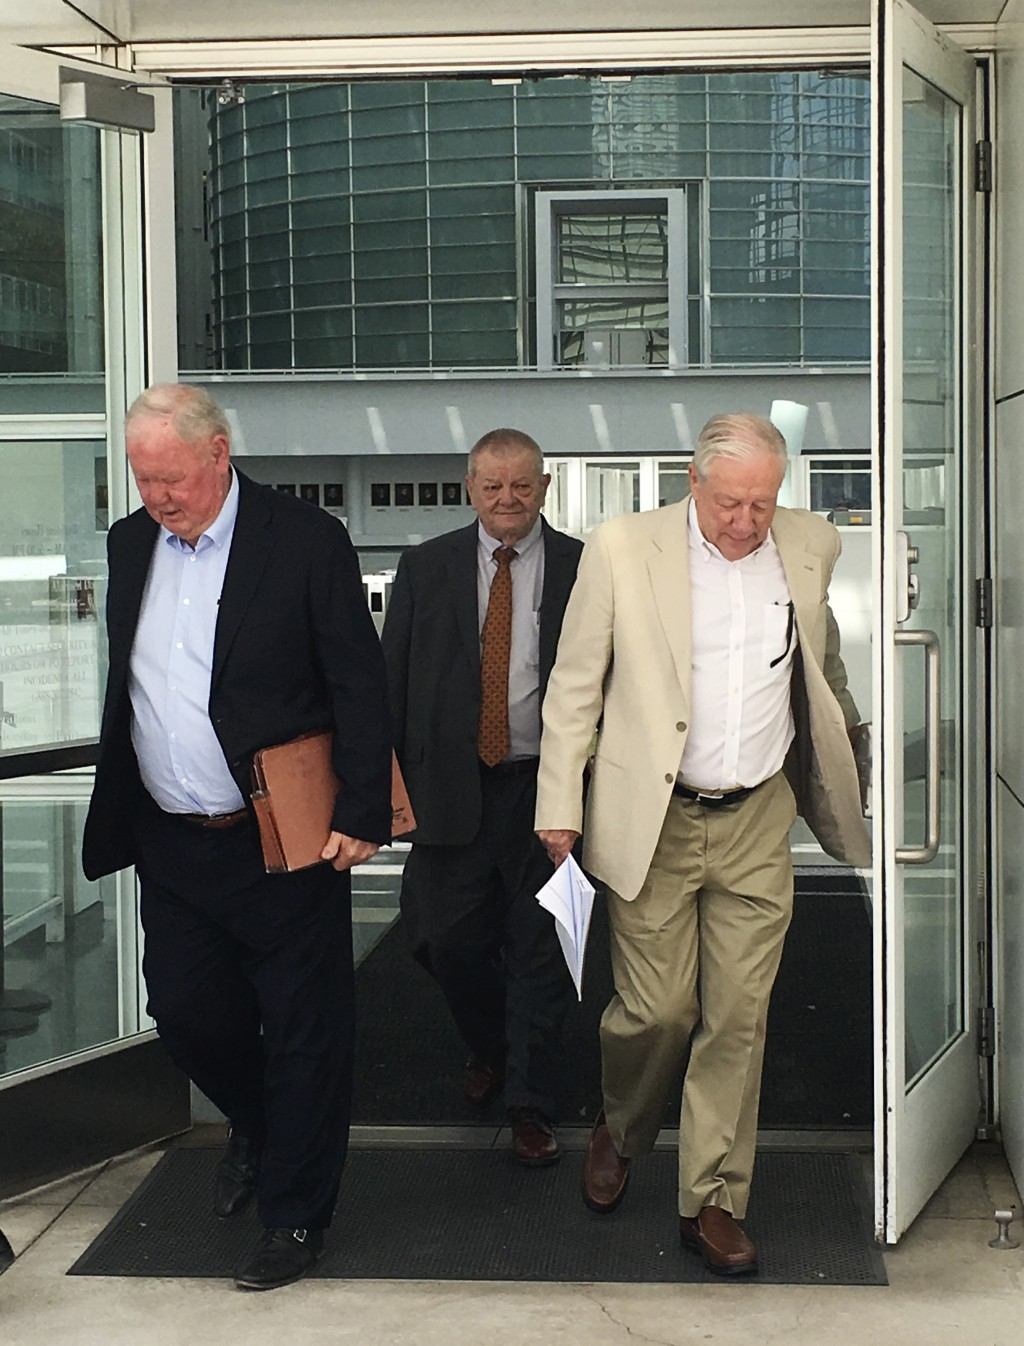 Backpage.com founders James Larkin, left, and Michael Lacey, right, leave U.S. District Court in downtown Phoenix on Monday, April 30, 2018. A judge s...